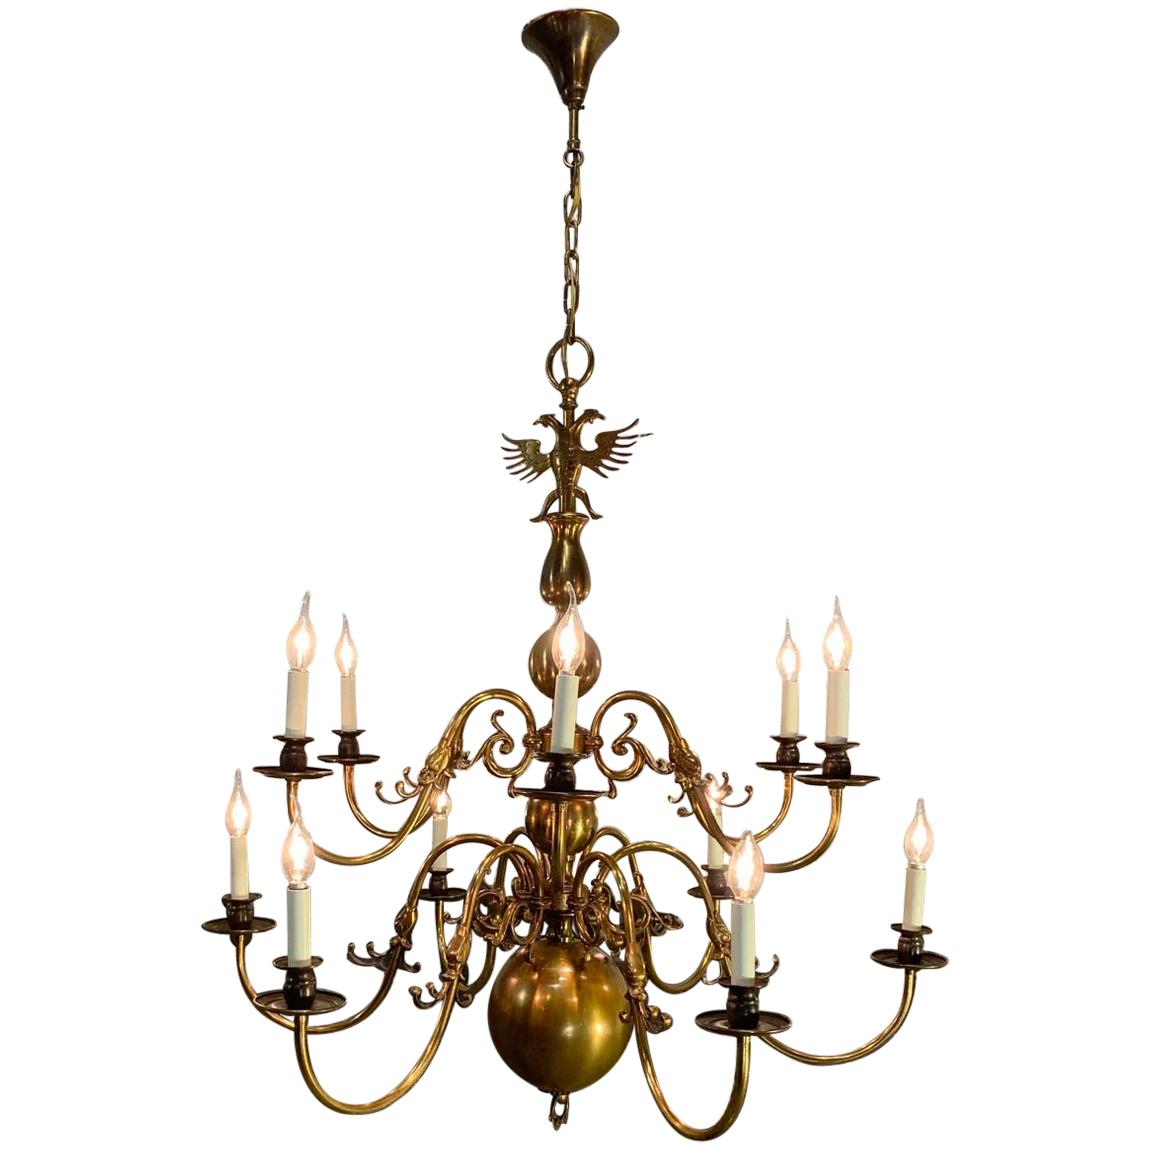 Antique Dutch Brass Two-Tier Twelve-Light Bulbous and Scrolled Chandelier